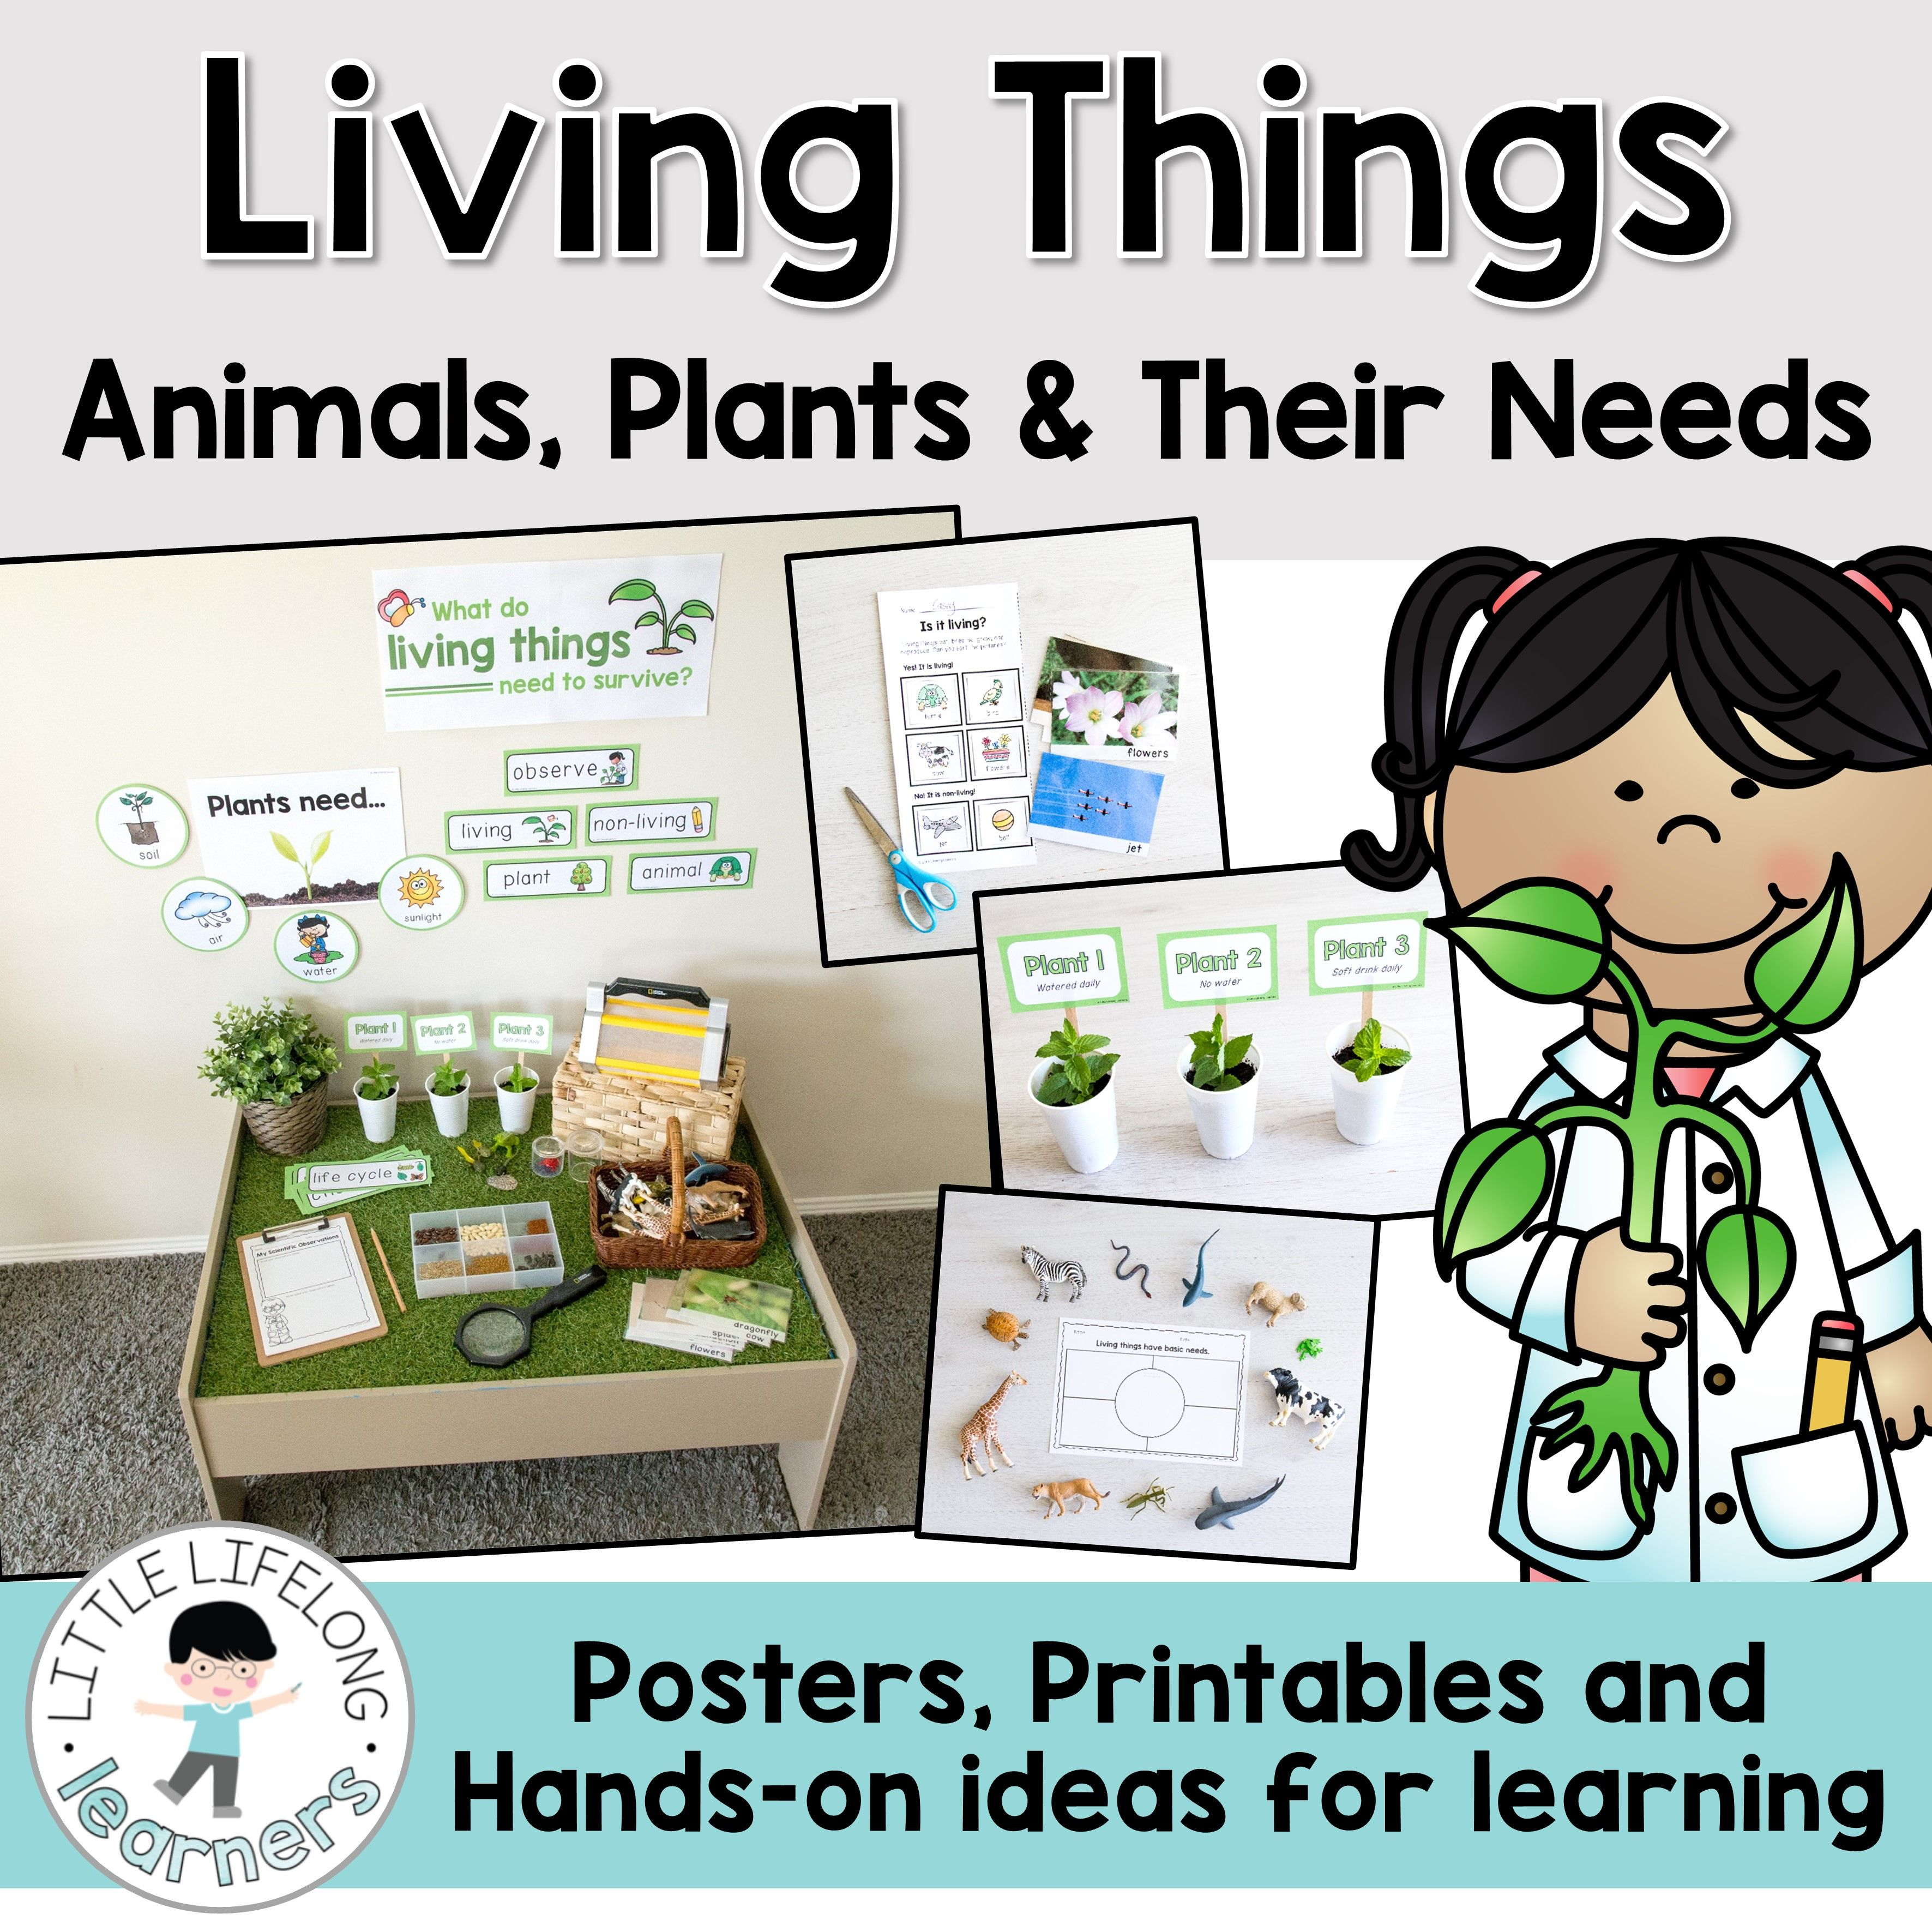 living things animals plants and their needs science social studies science activities. Black Bedroom Furniture Sets. Home Design Ideas